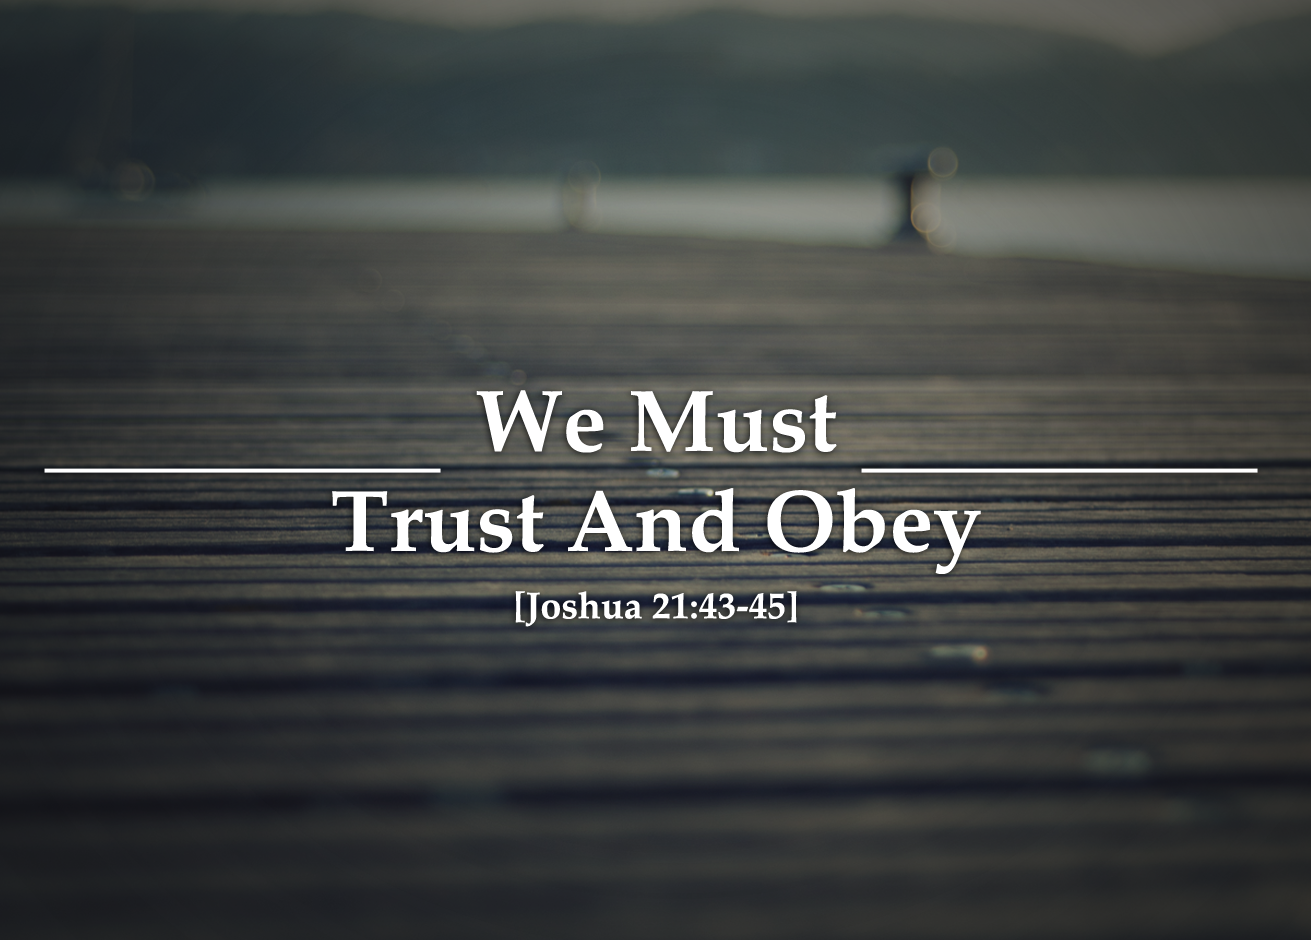 We-Must-Trust-And-Obey